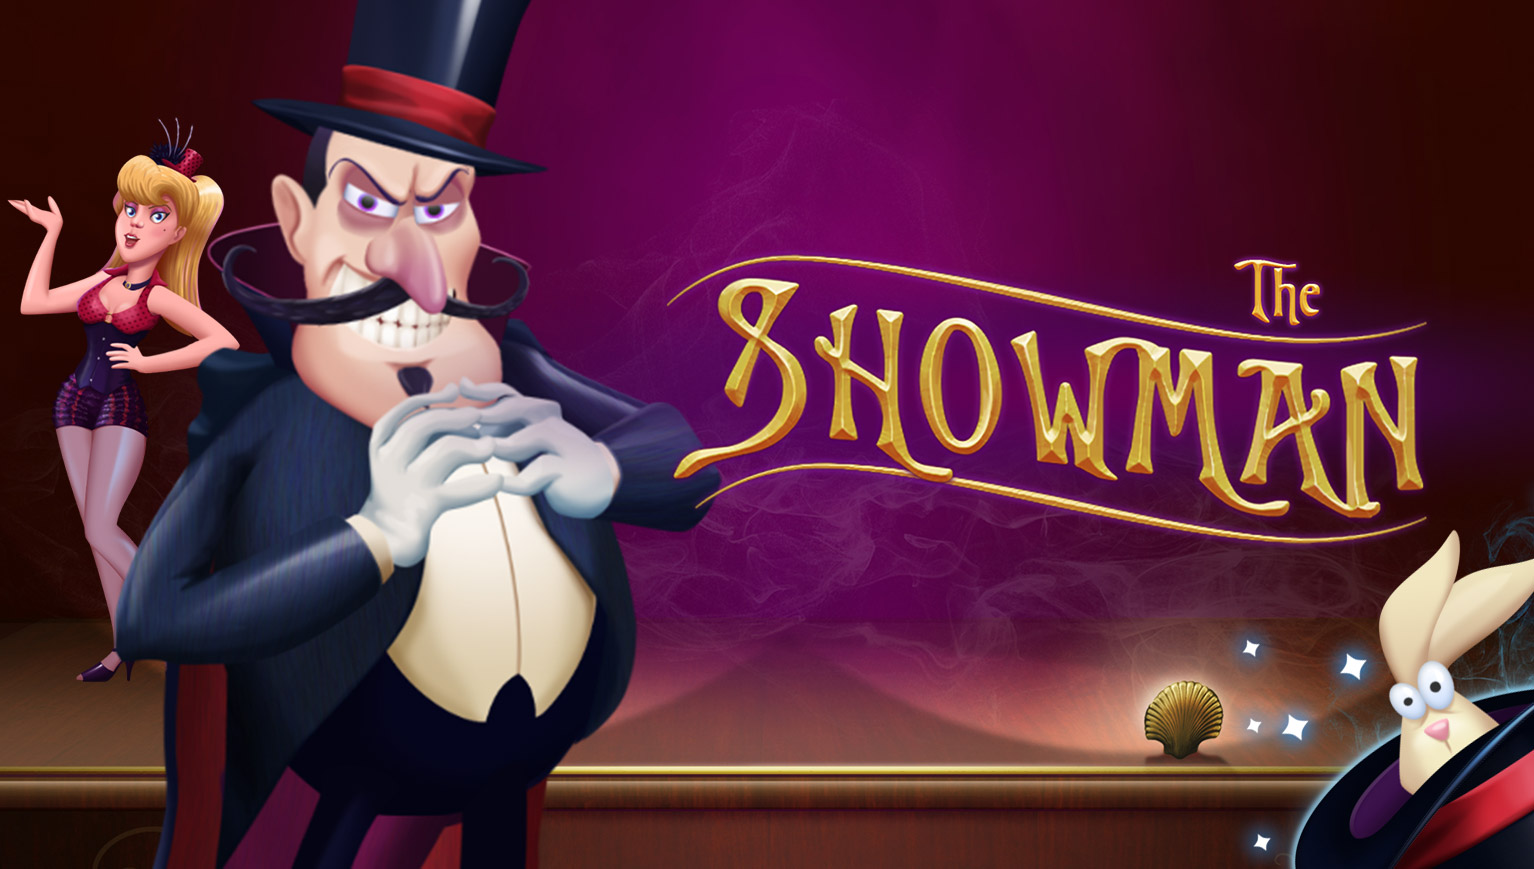 the showman slot magician magic hat cards rabbit hat guillotine handcuffs